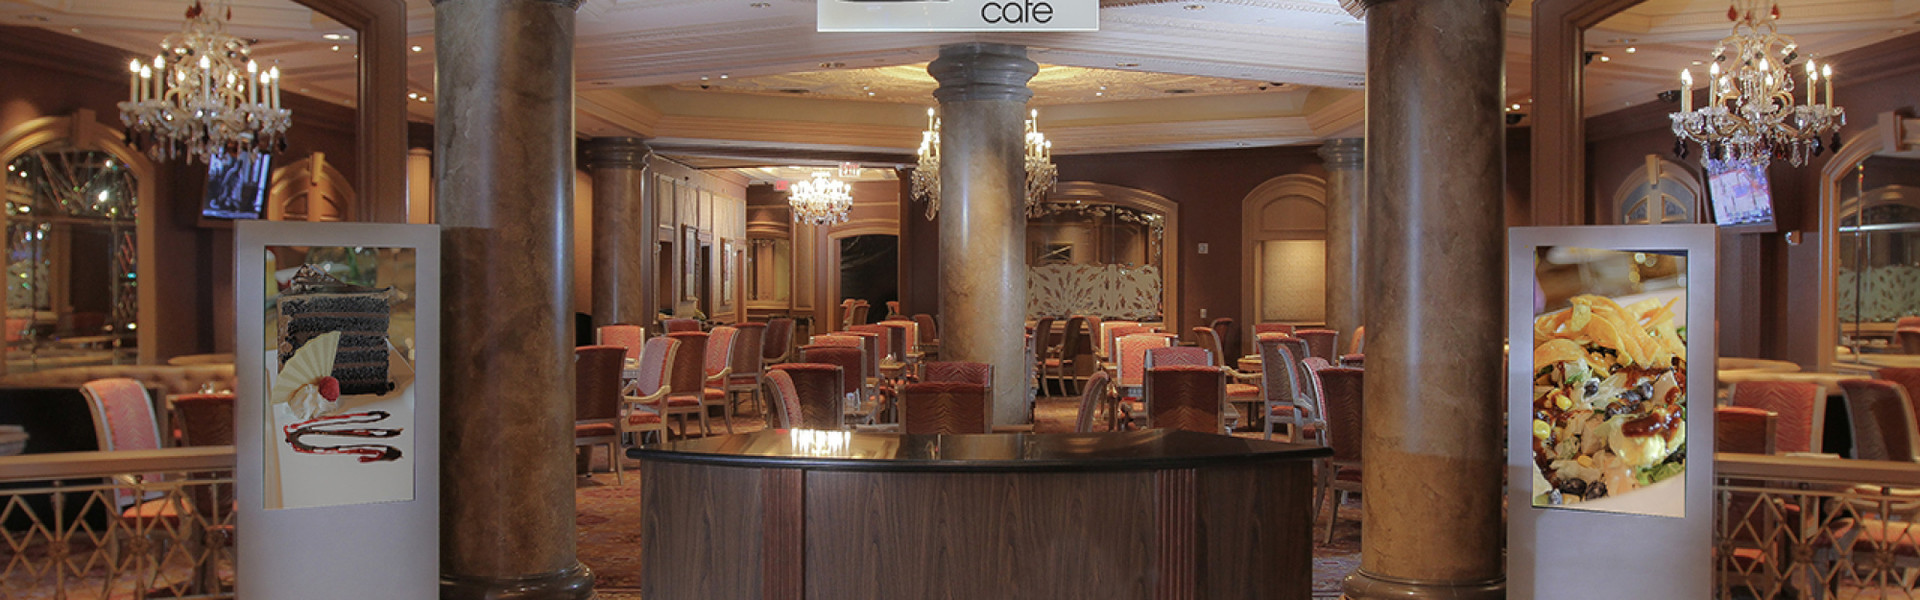 Sid's Cafe | Westgate Las Vegas Resort & Casino